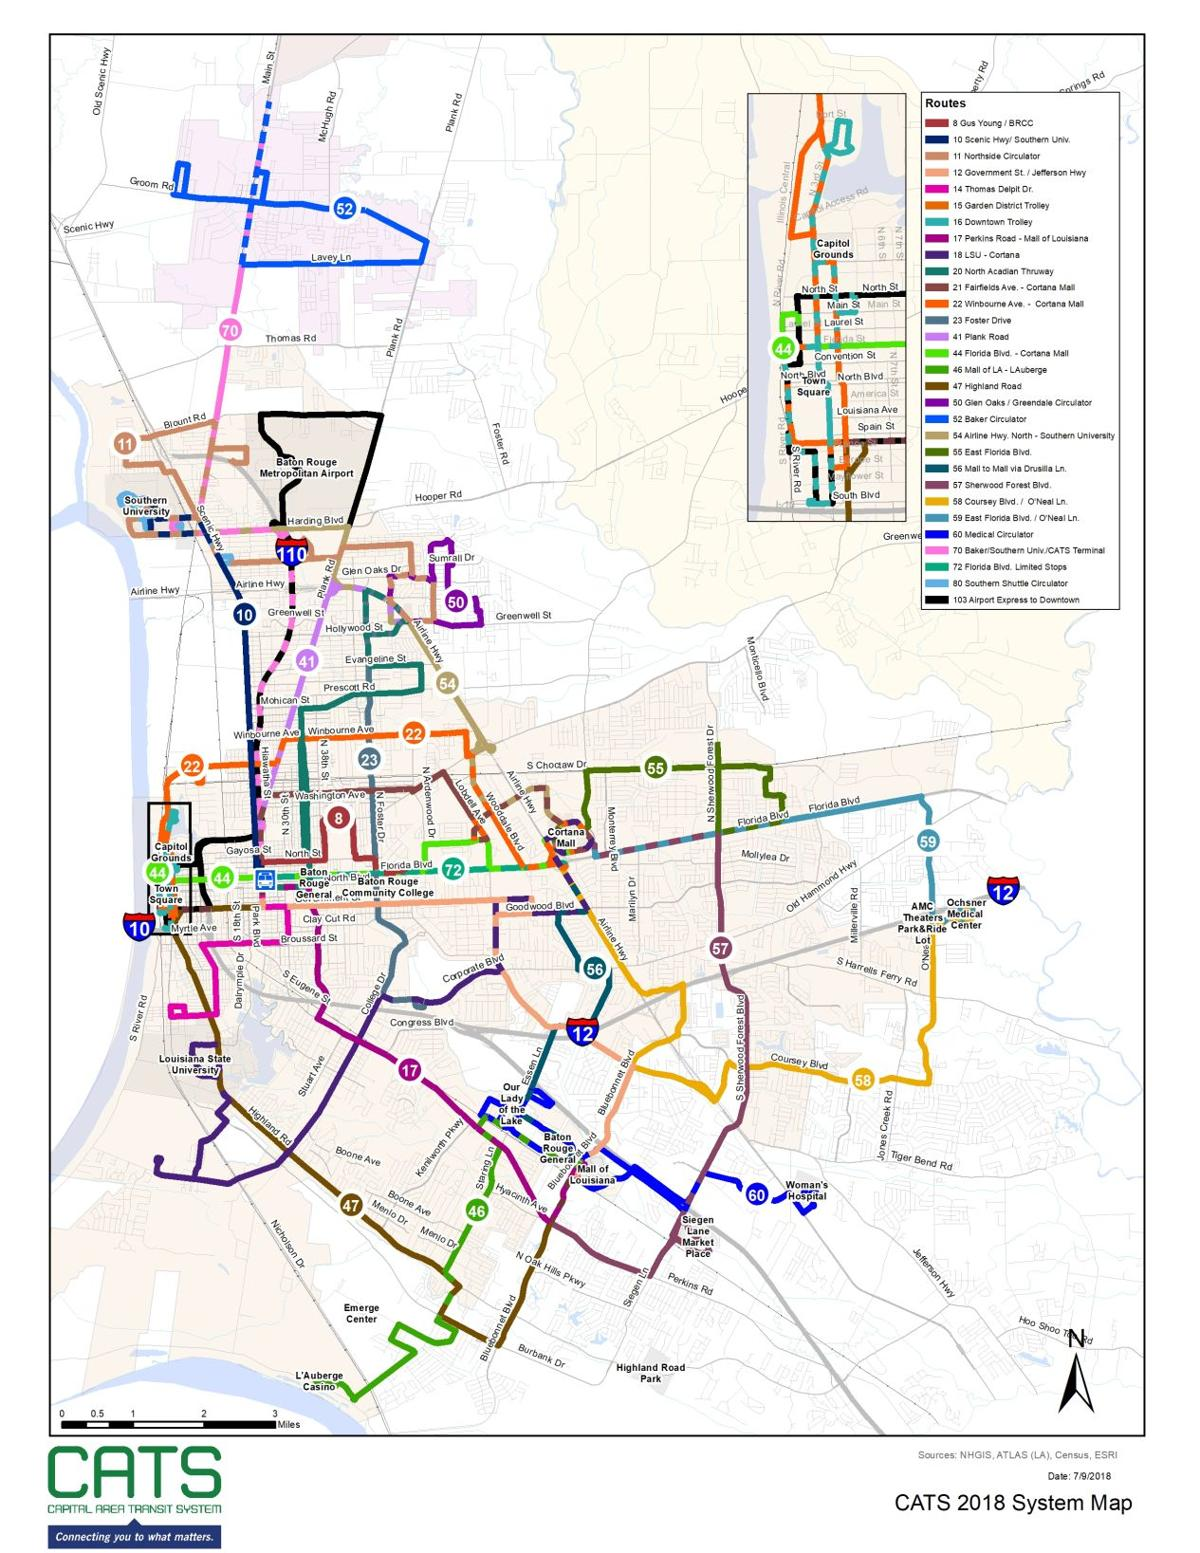 CATS routes prior to service changes